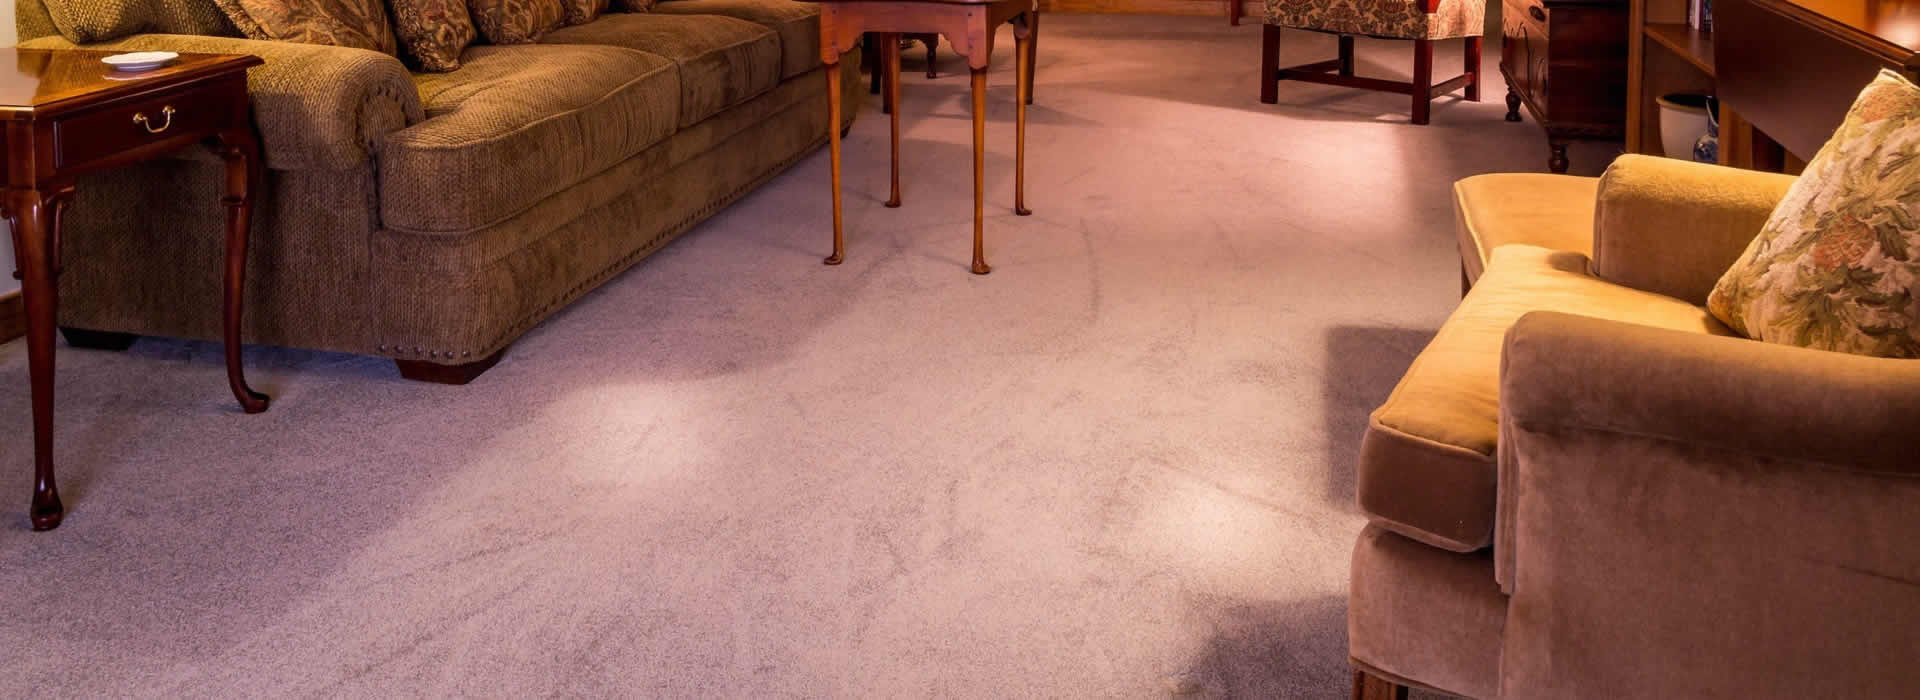 Carpet Cleaning Bedford Professional Carpet Cleaning